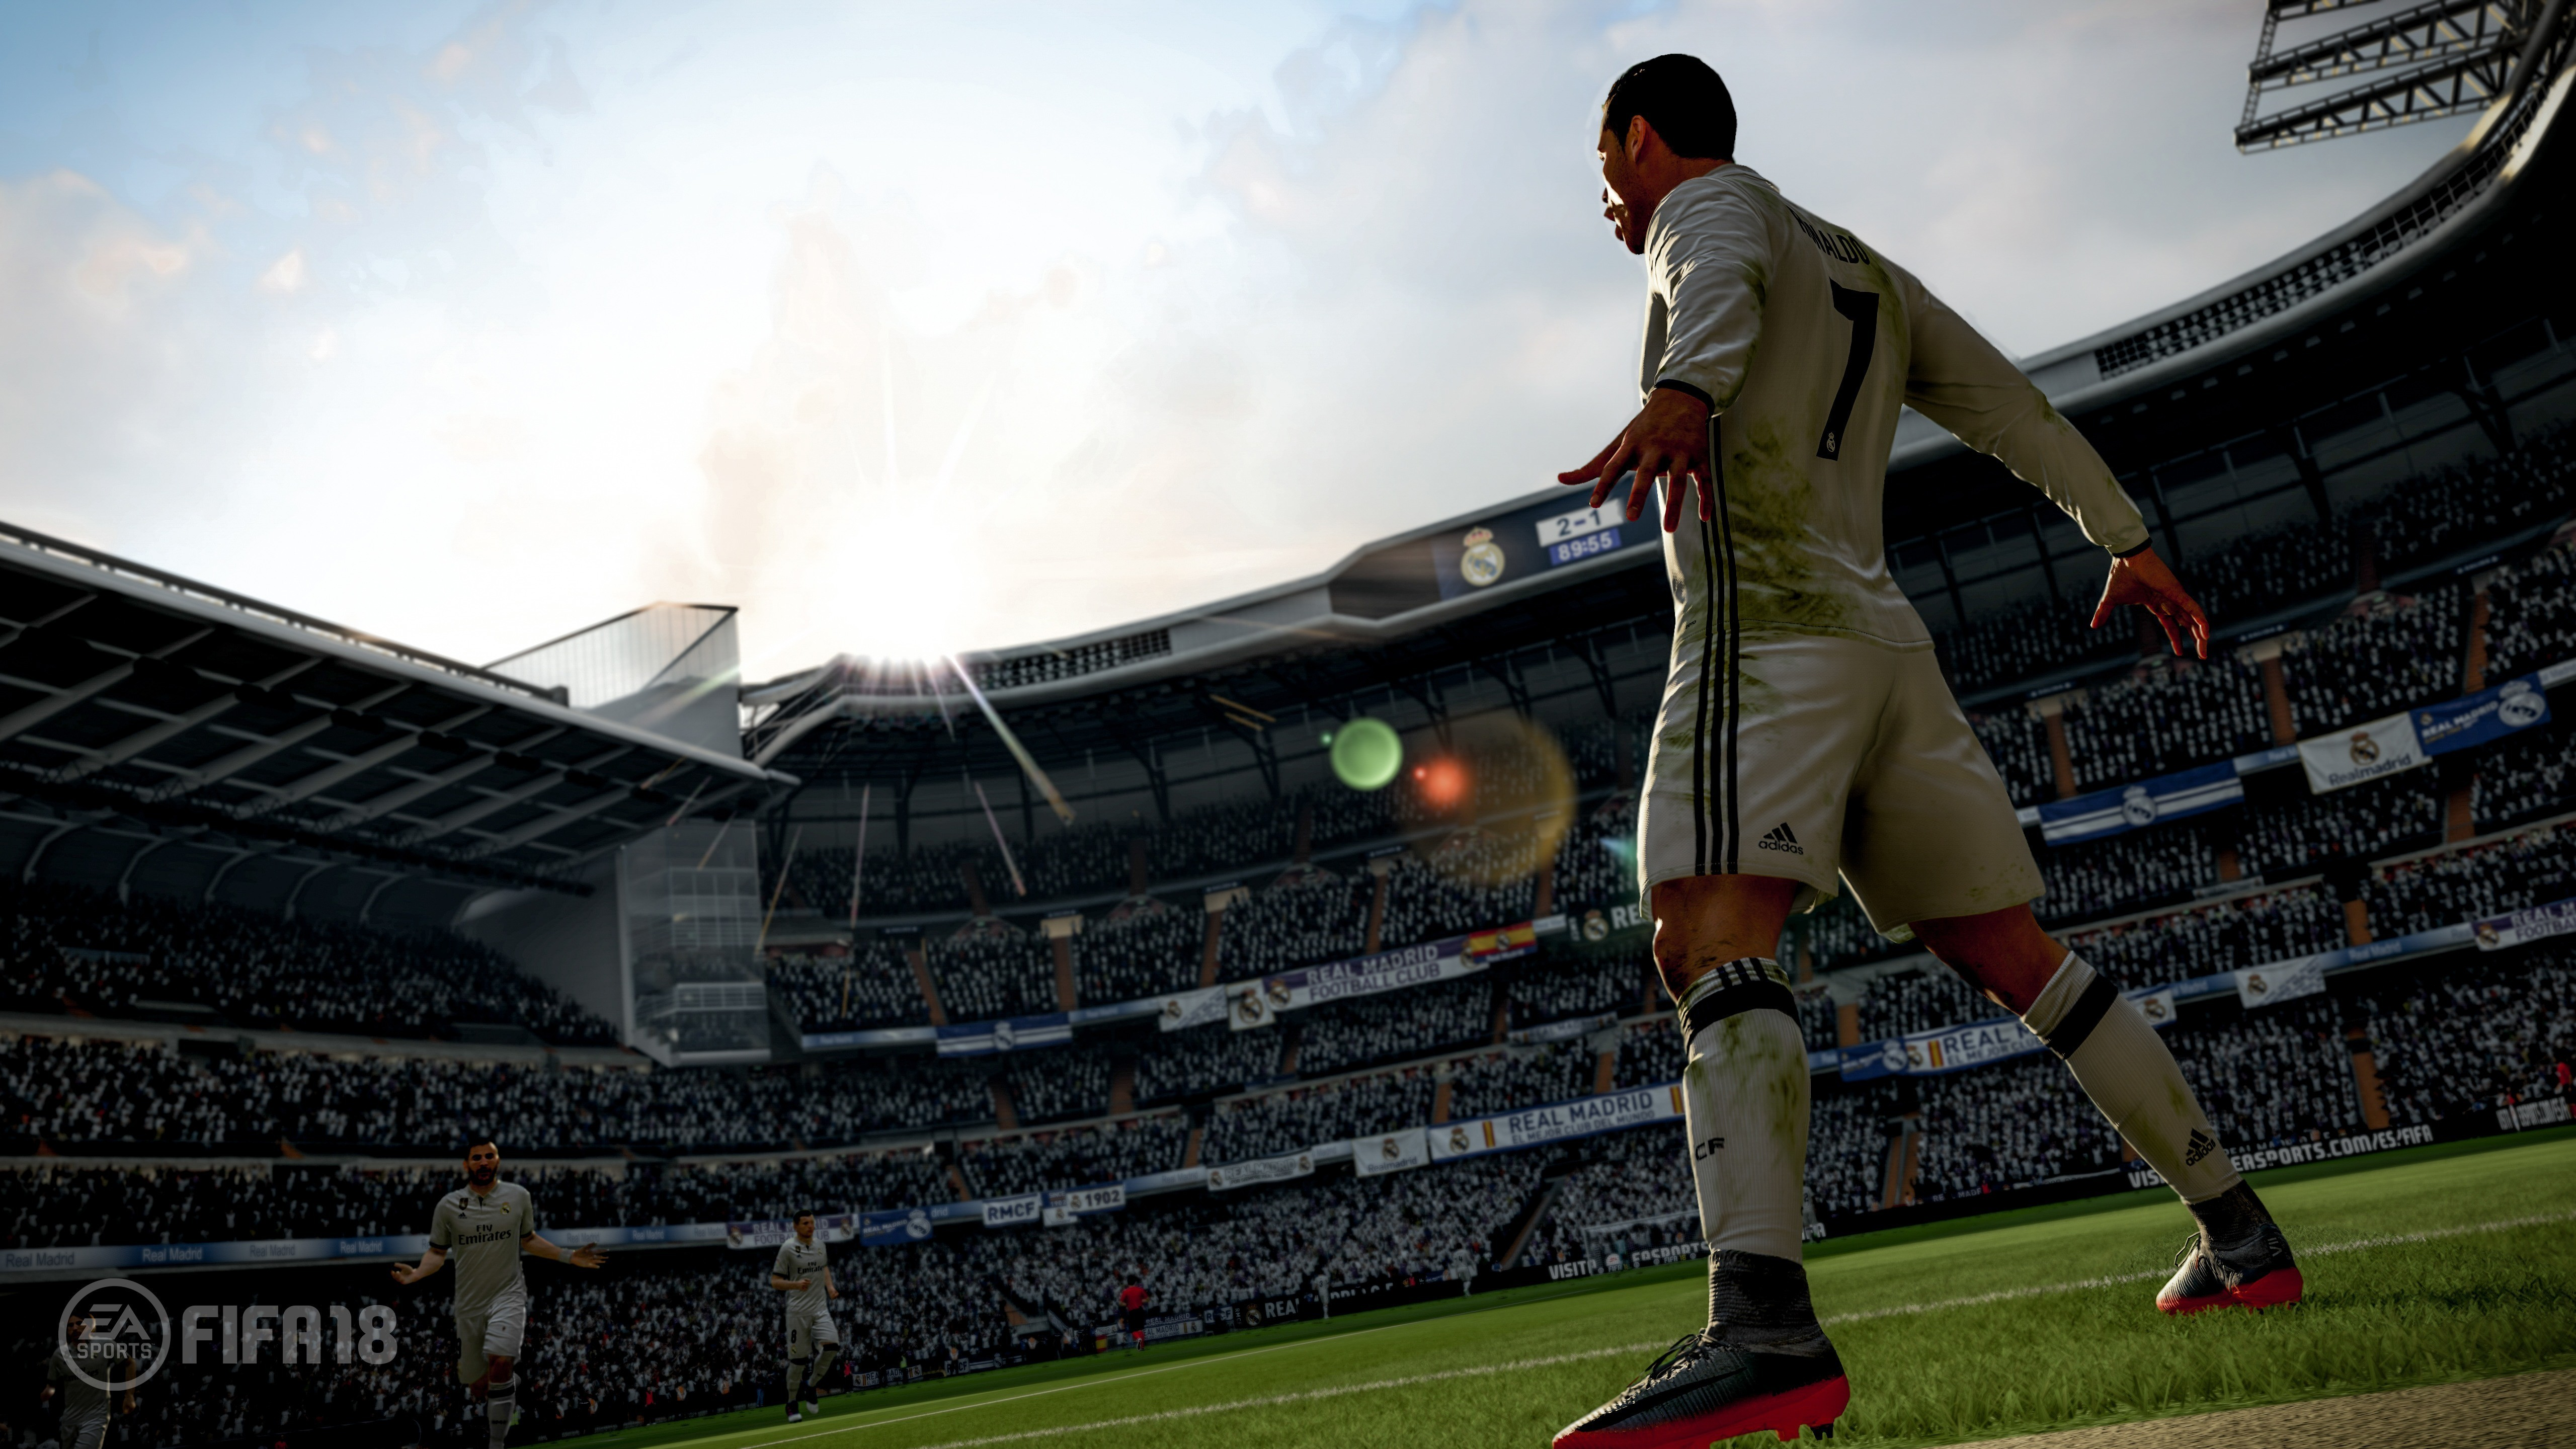 Wallpaper FIFA 18 4k Screenshot Poster E3 2017 Games 13691